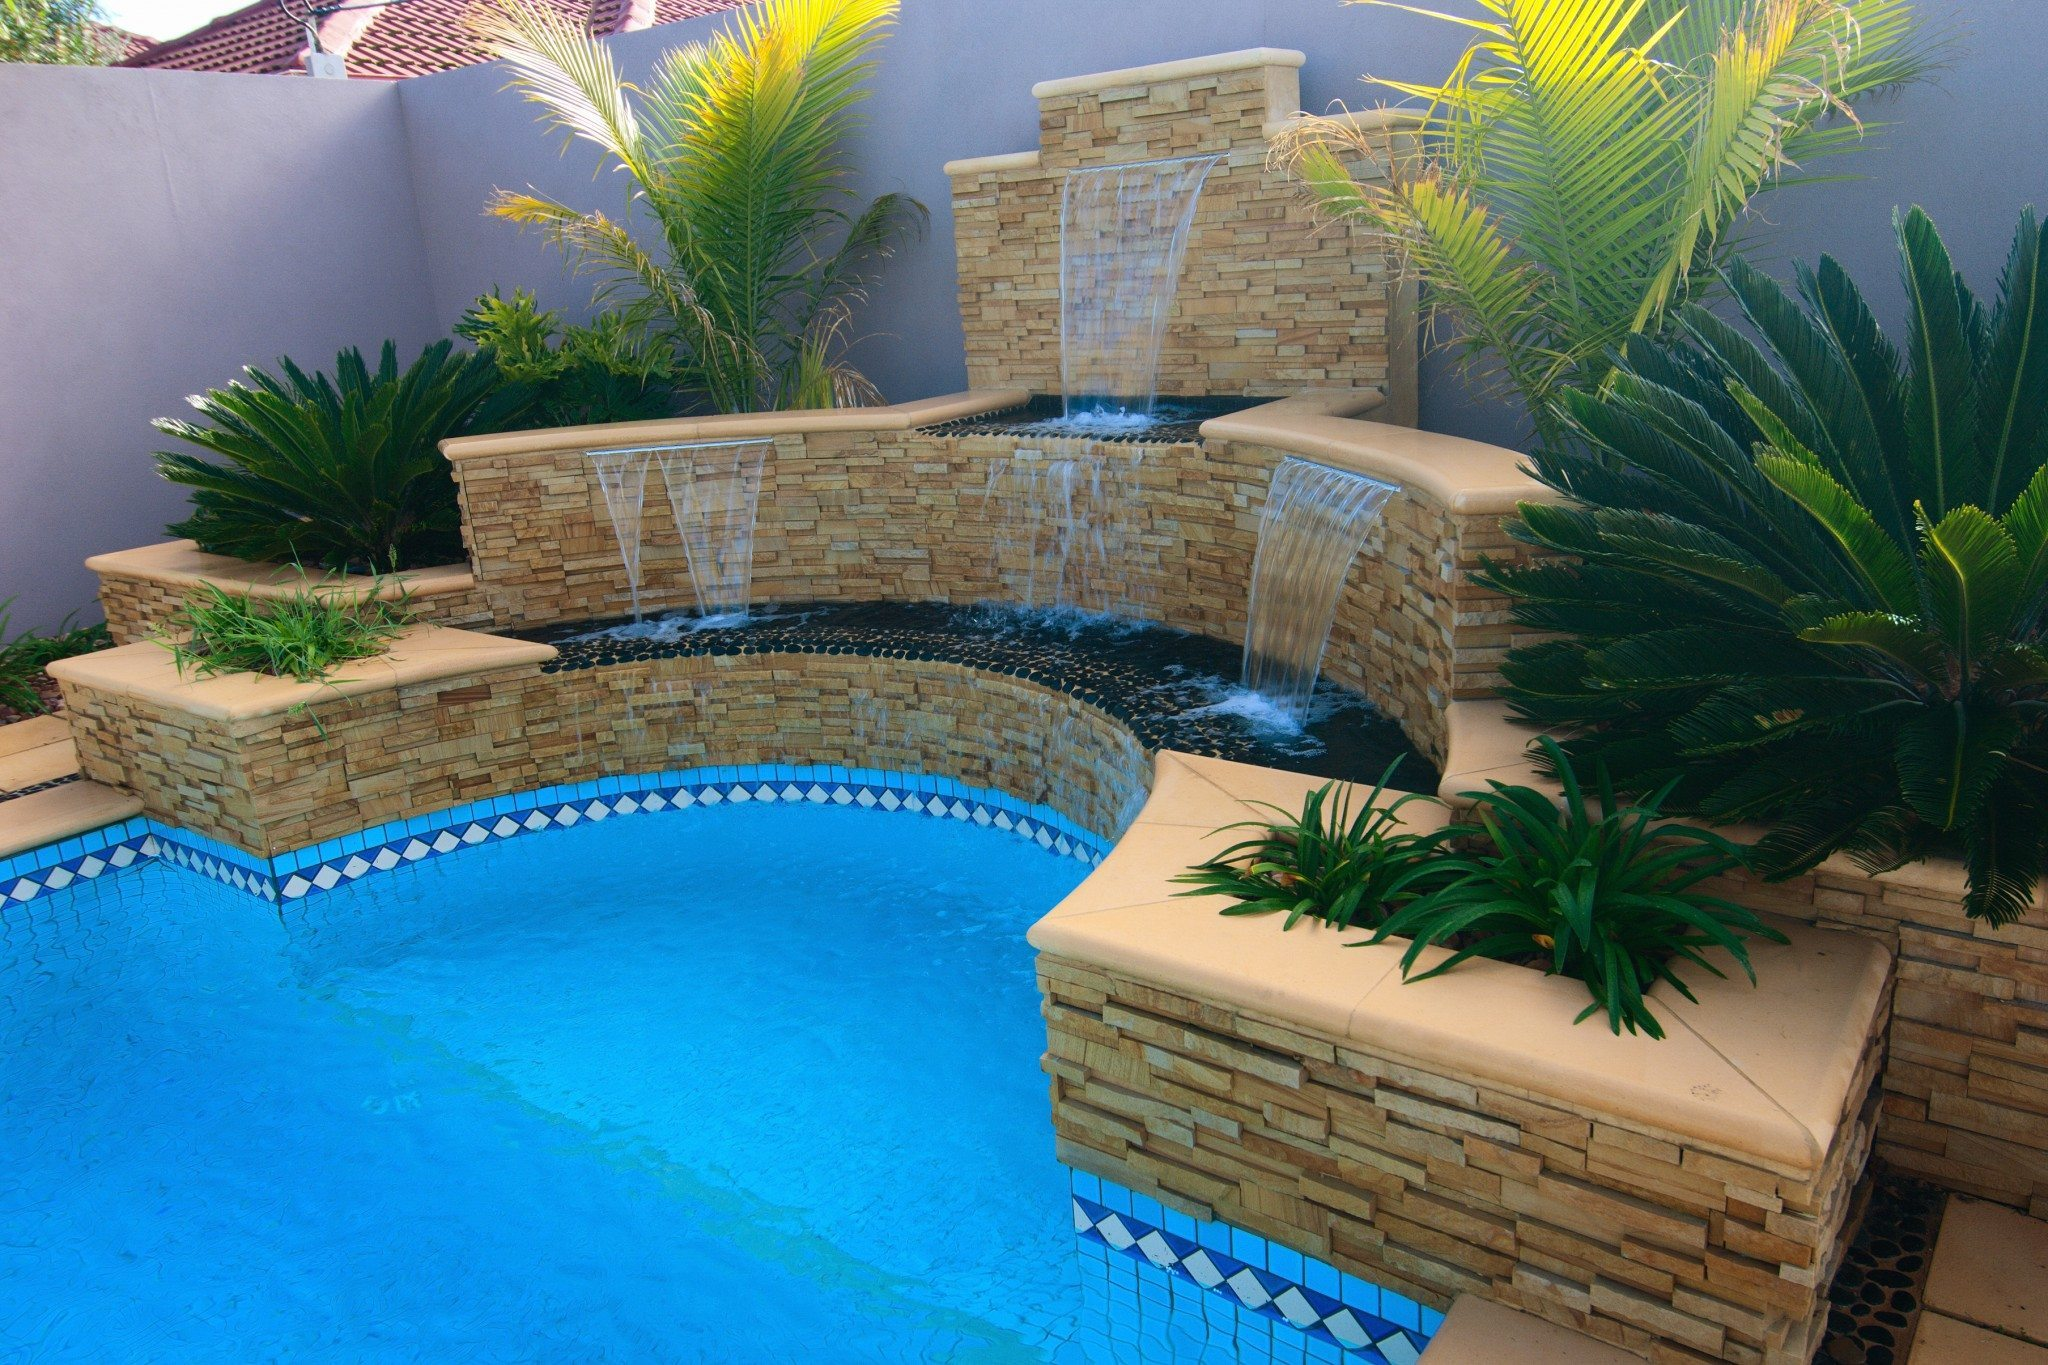 Gallery peressin pools for Landscape architect jobs adelaide